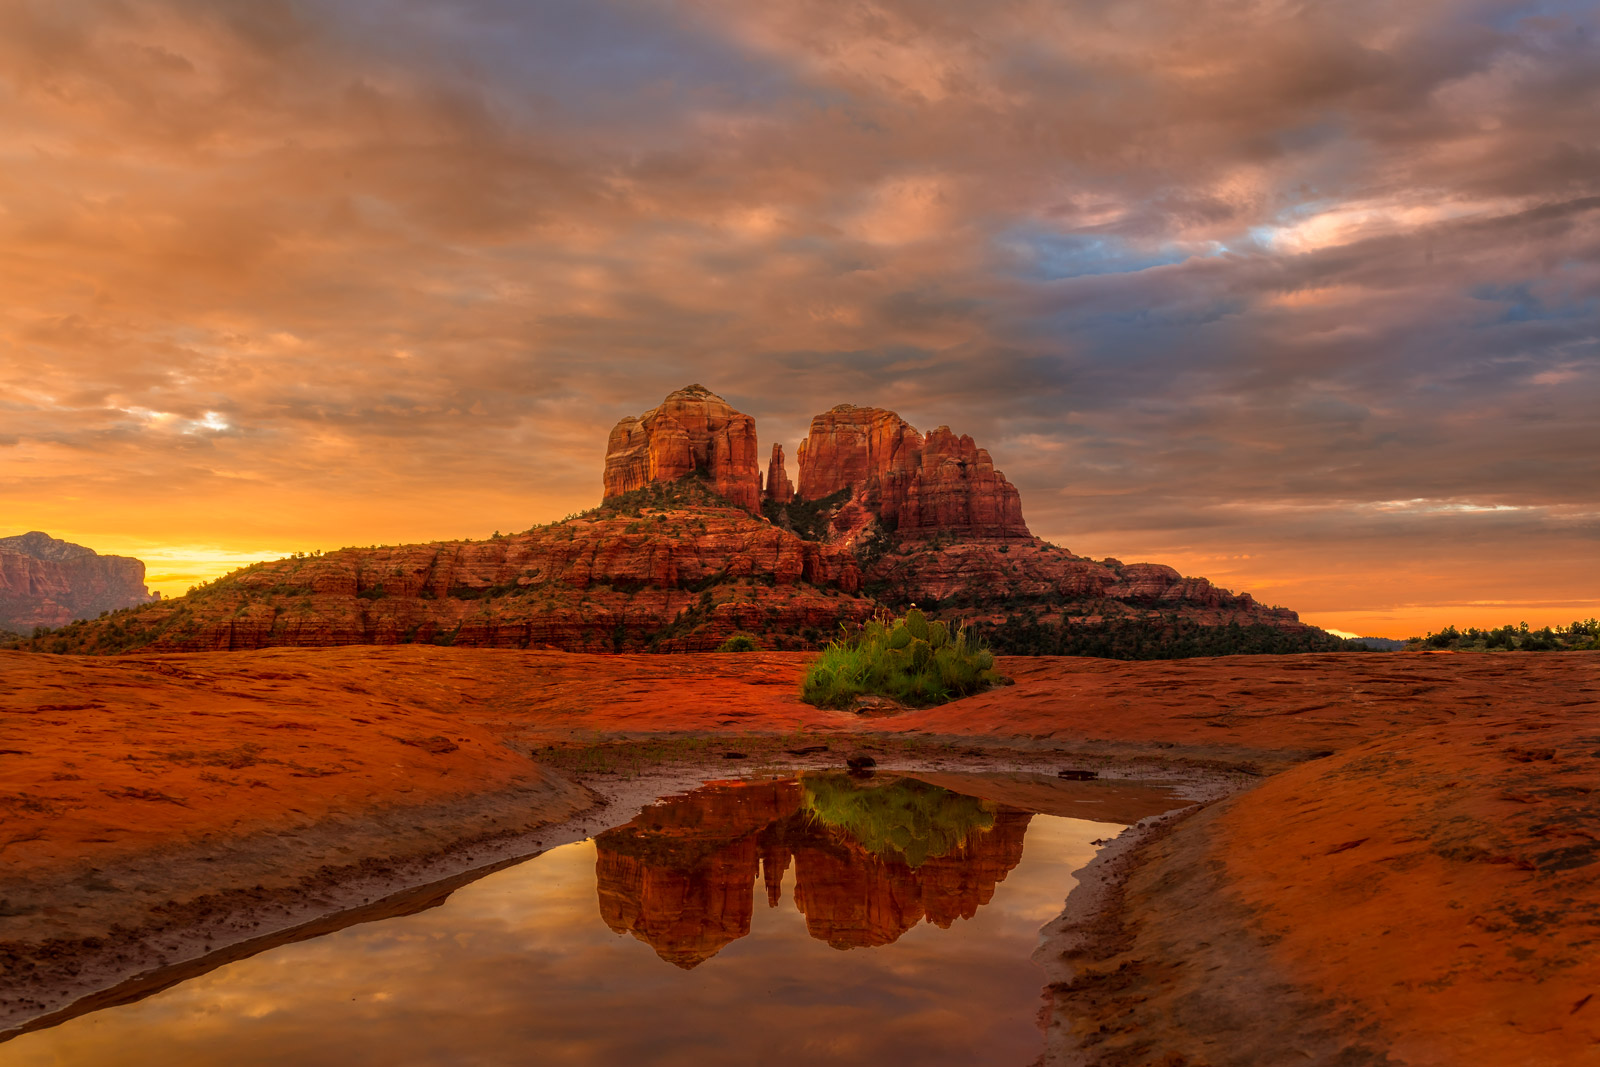 Arizona, Sedona, Slickrock, Secret, Sunrise, Cathedral, Rocks